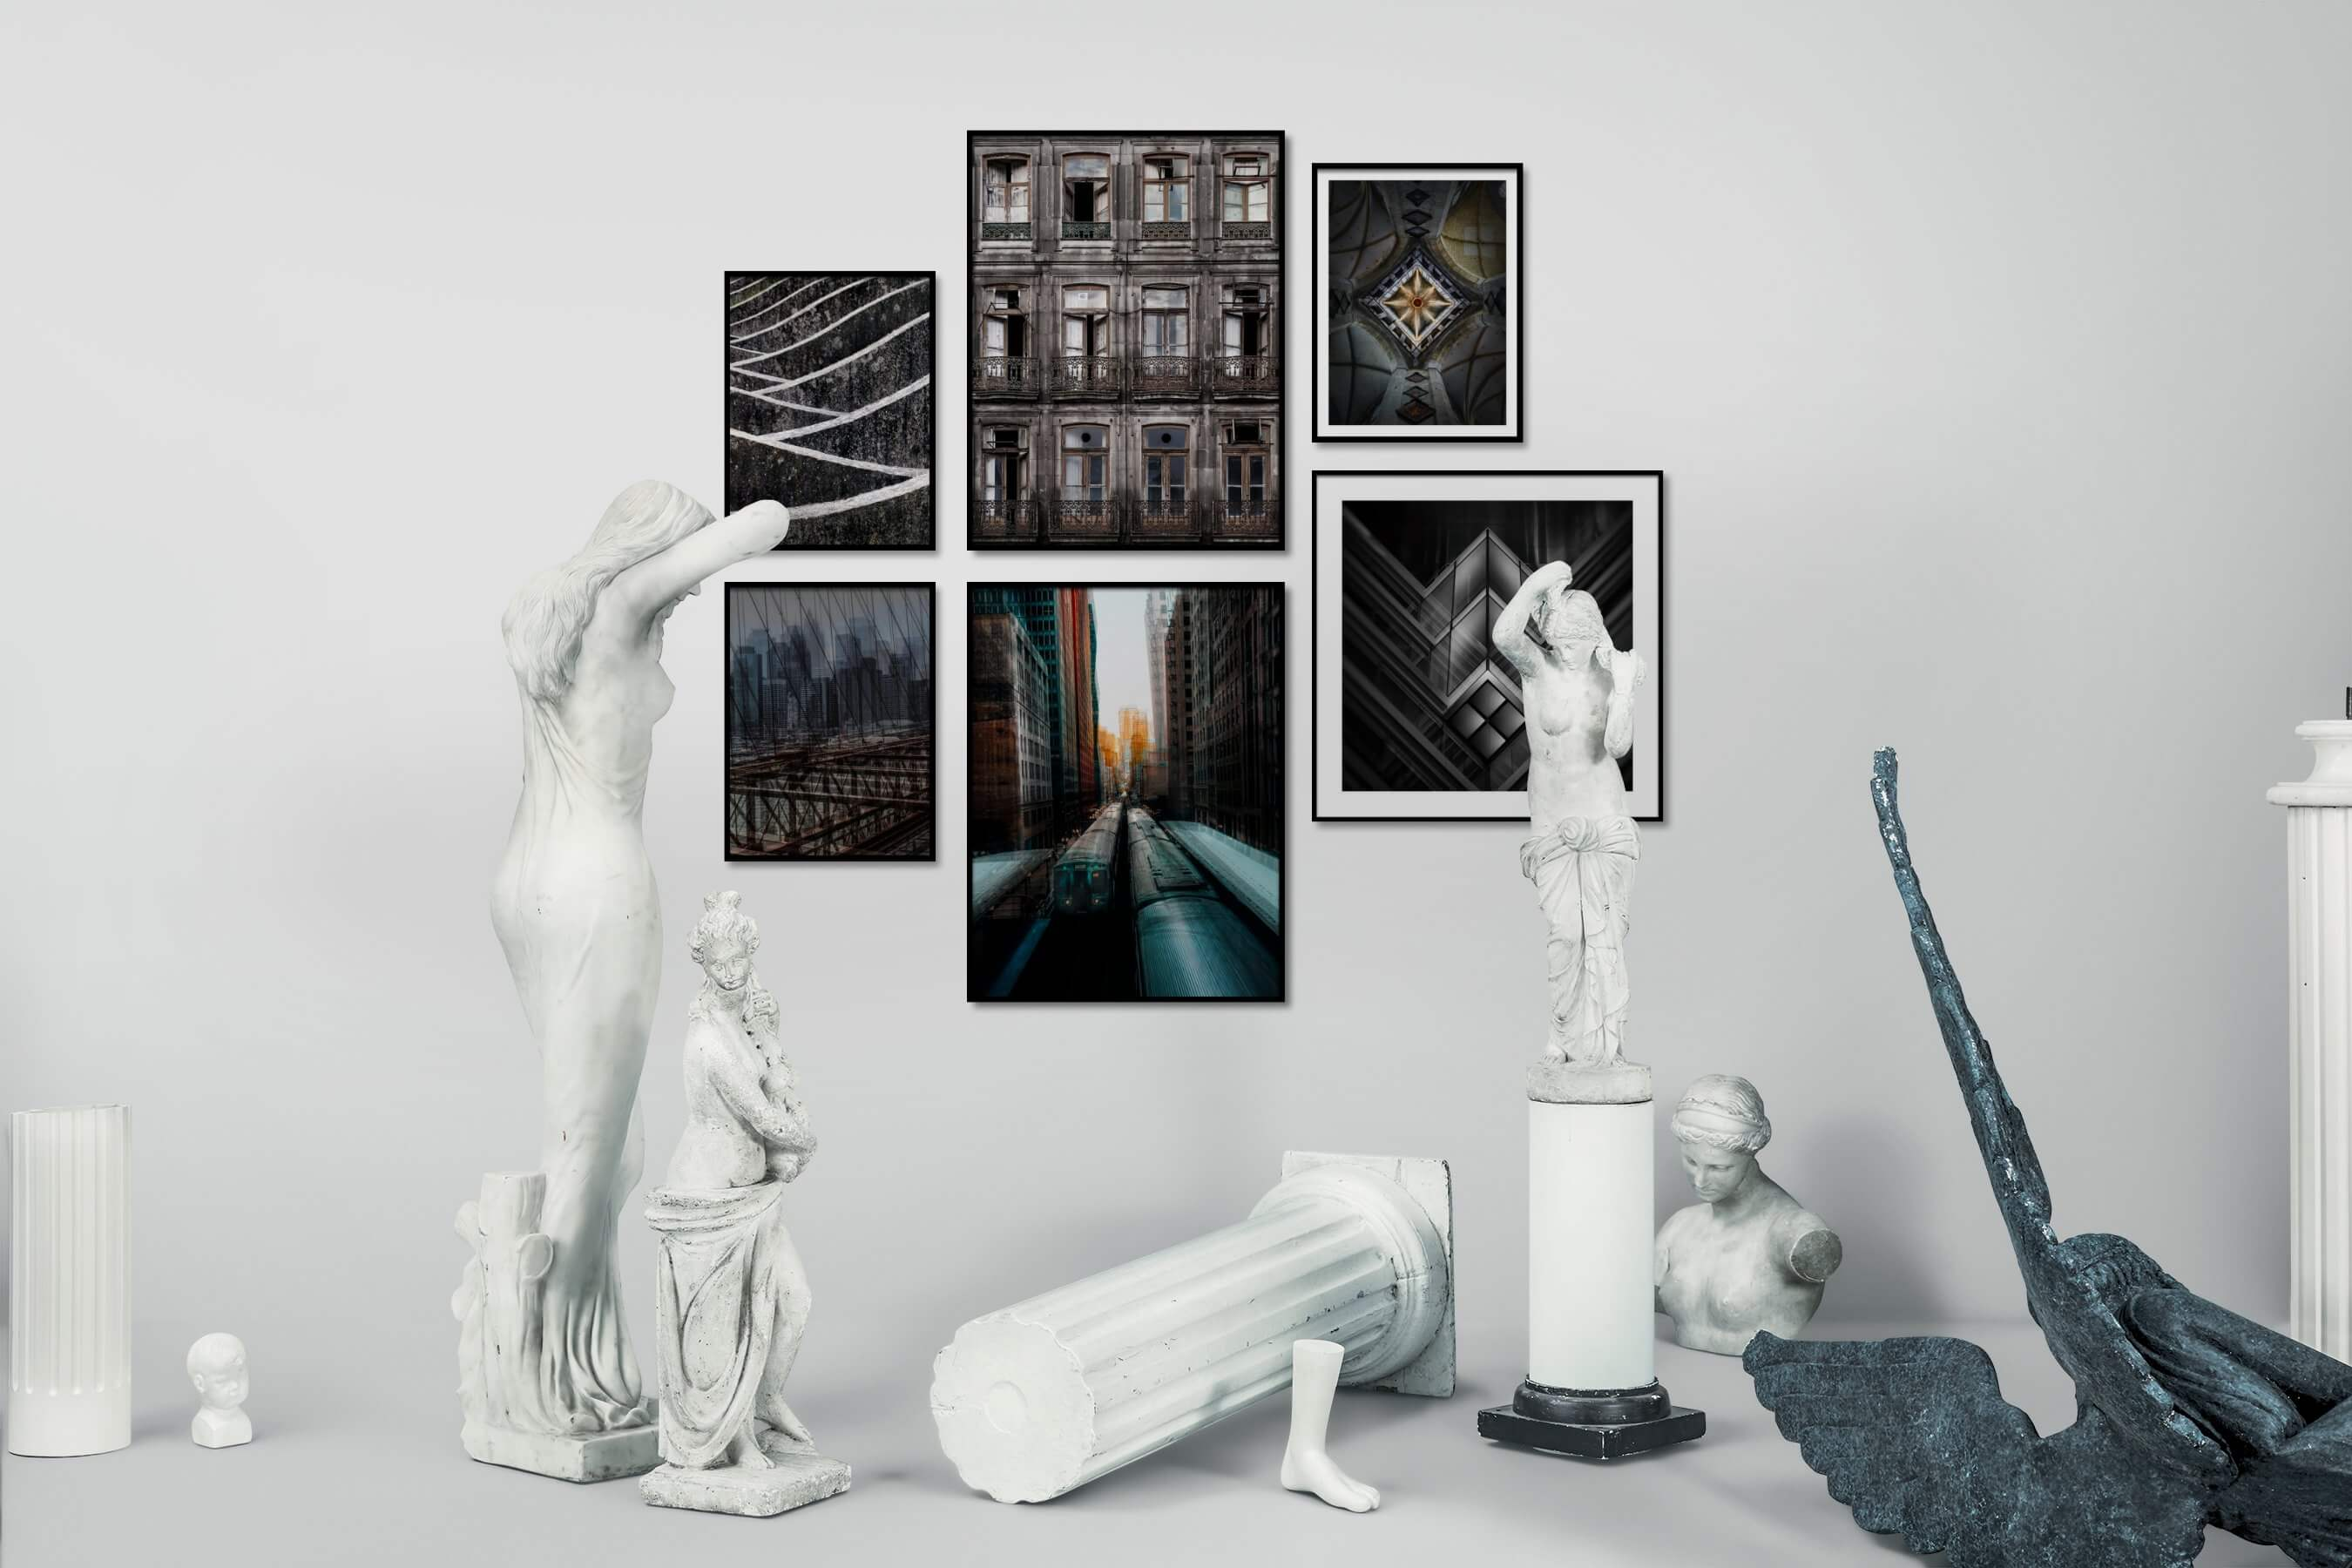 Gallery wall idea with six framed pictures arranged on a wall depicting Black & White, For the Moderate, City Life, Vintage, For the Maximalist, and Americana